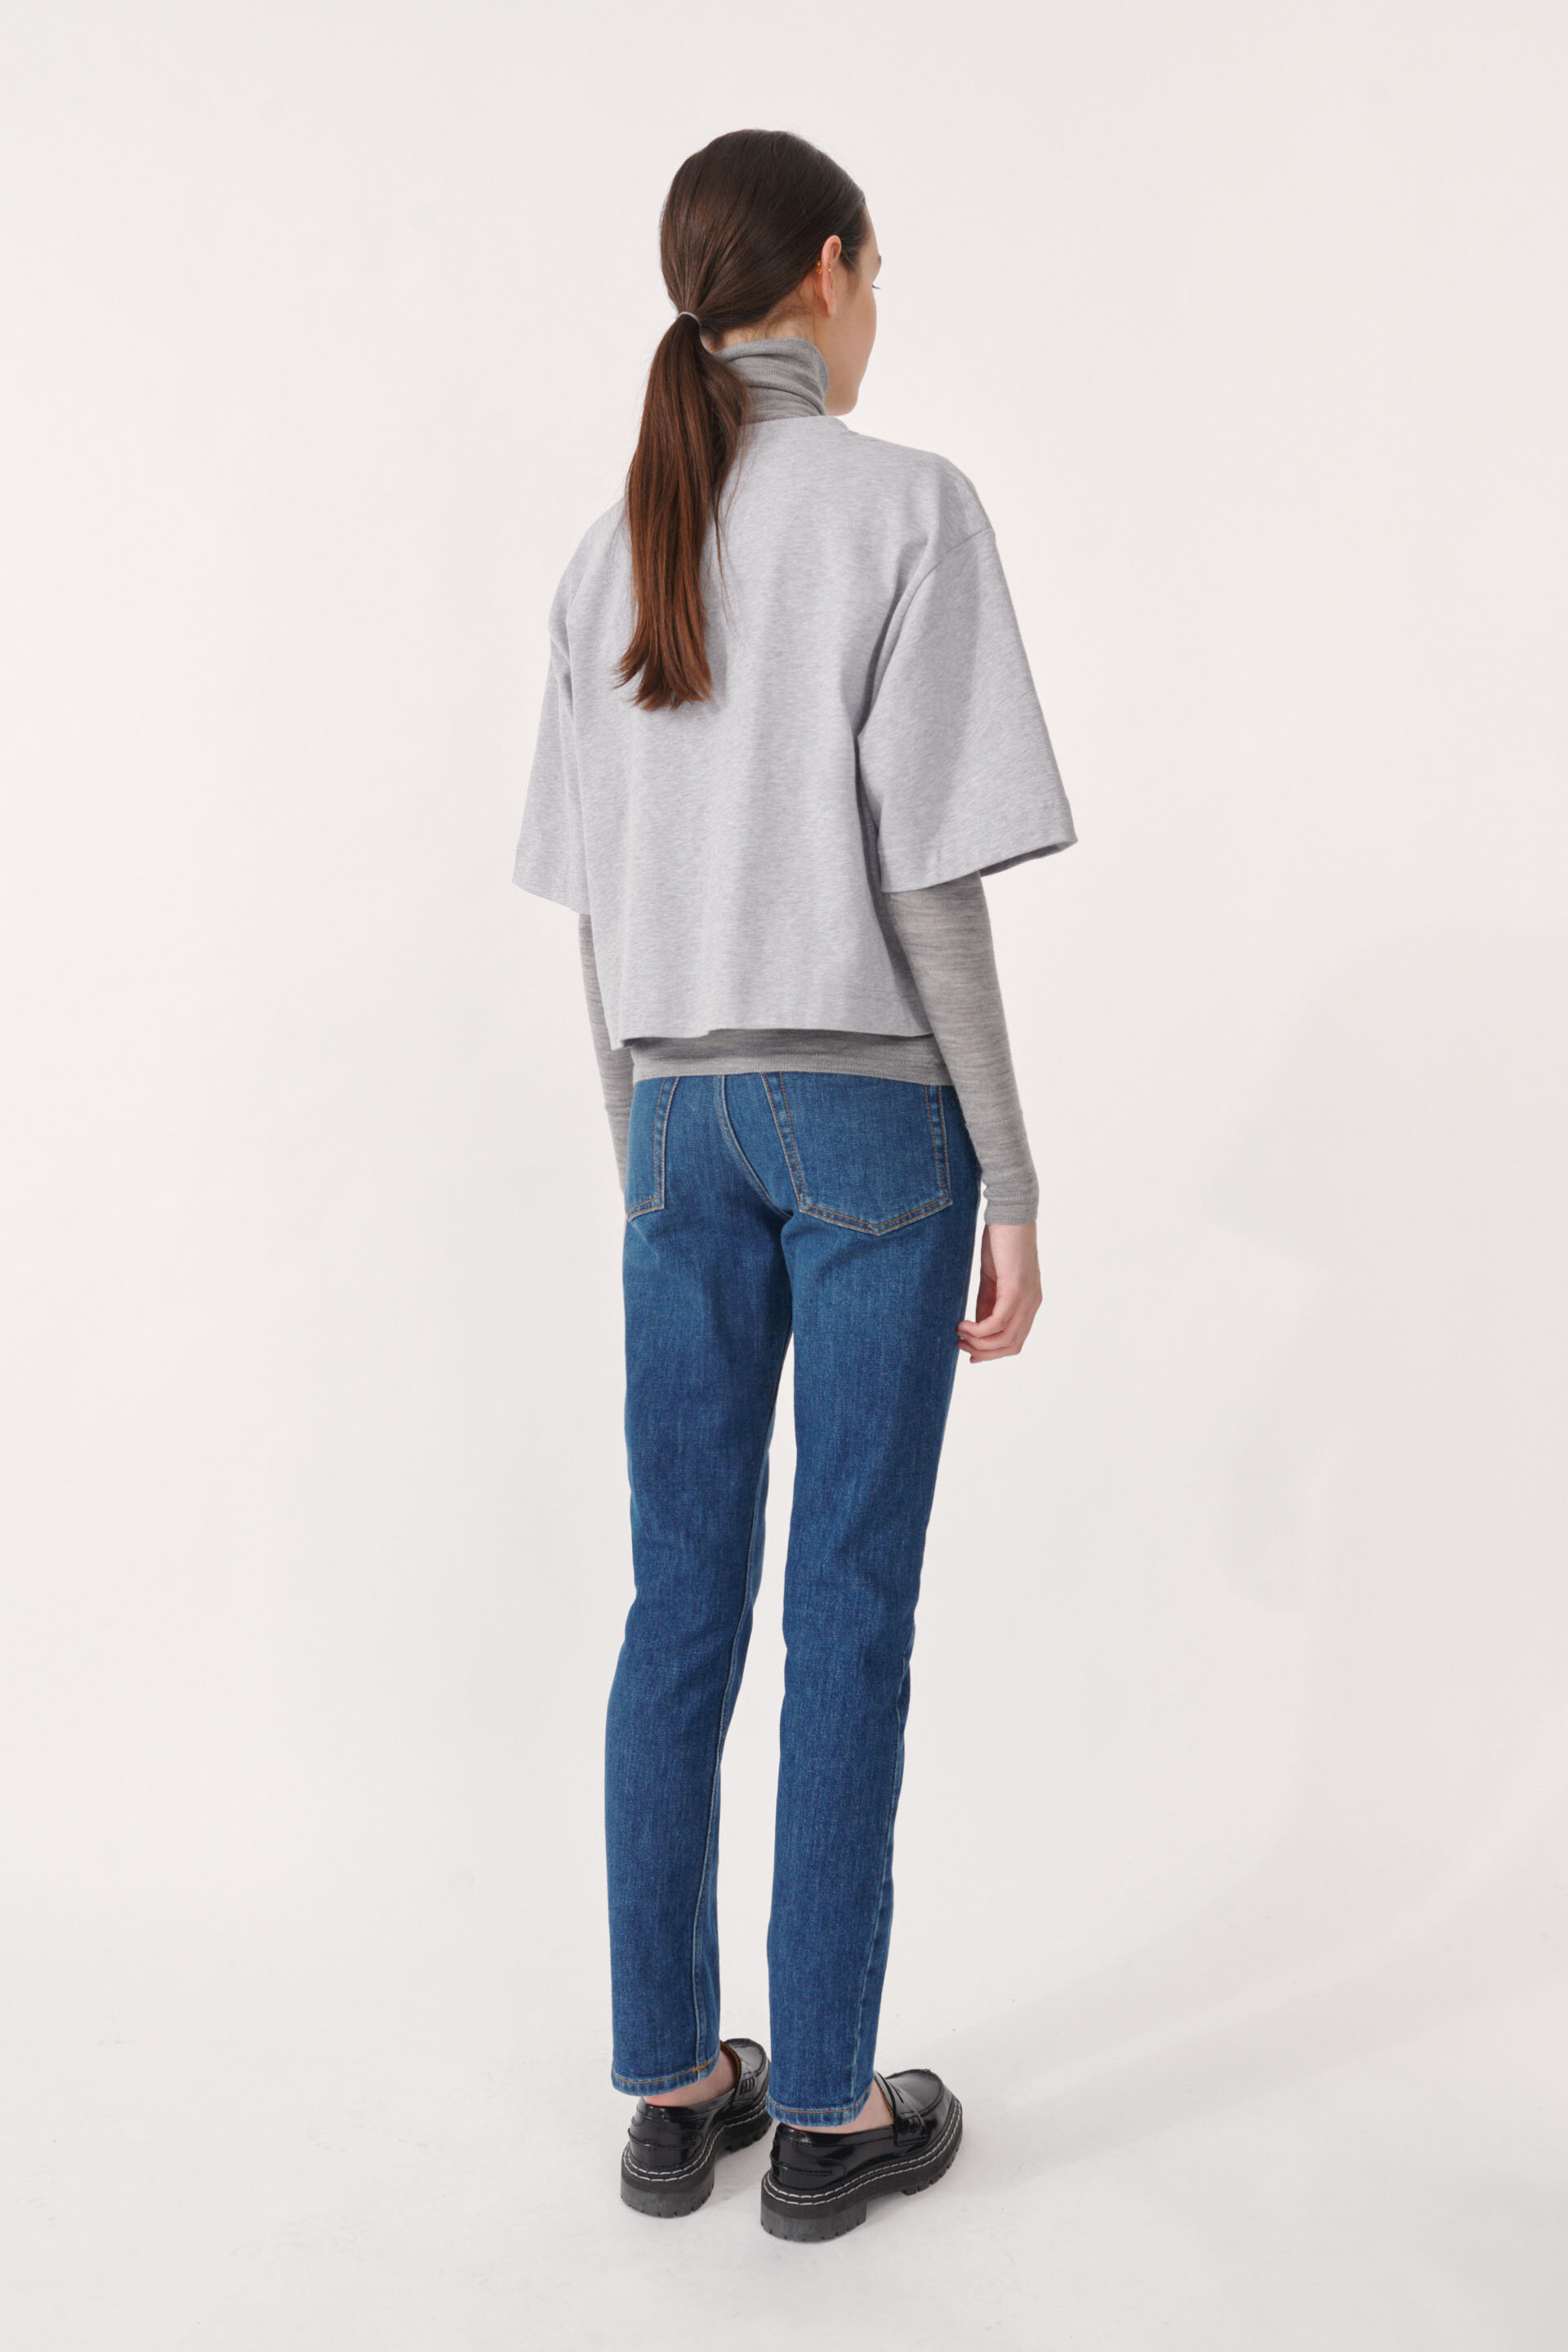 Jiana T-shirt Grey Melange An oversized, boxy t-shirt with a cropped silhouette - detail image